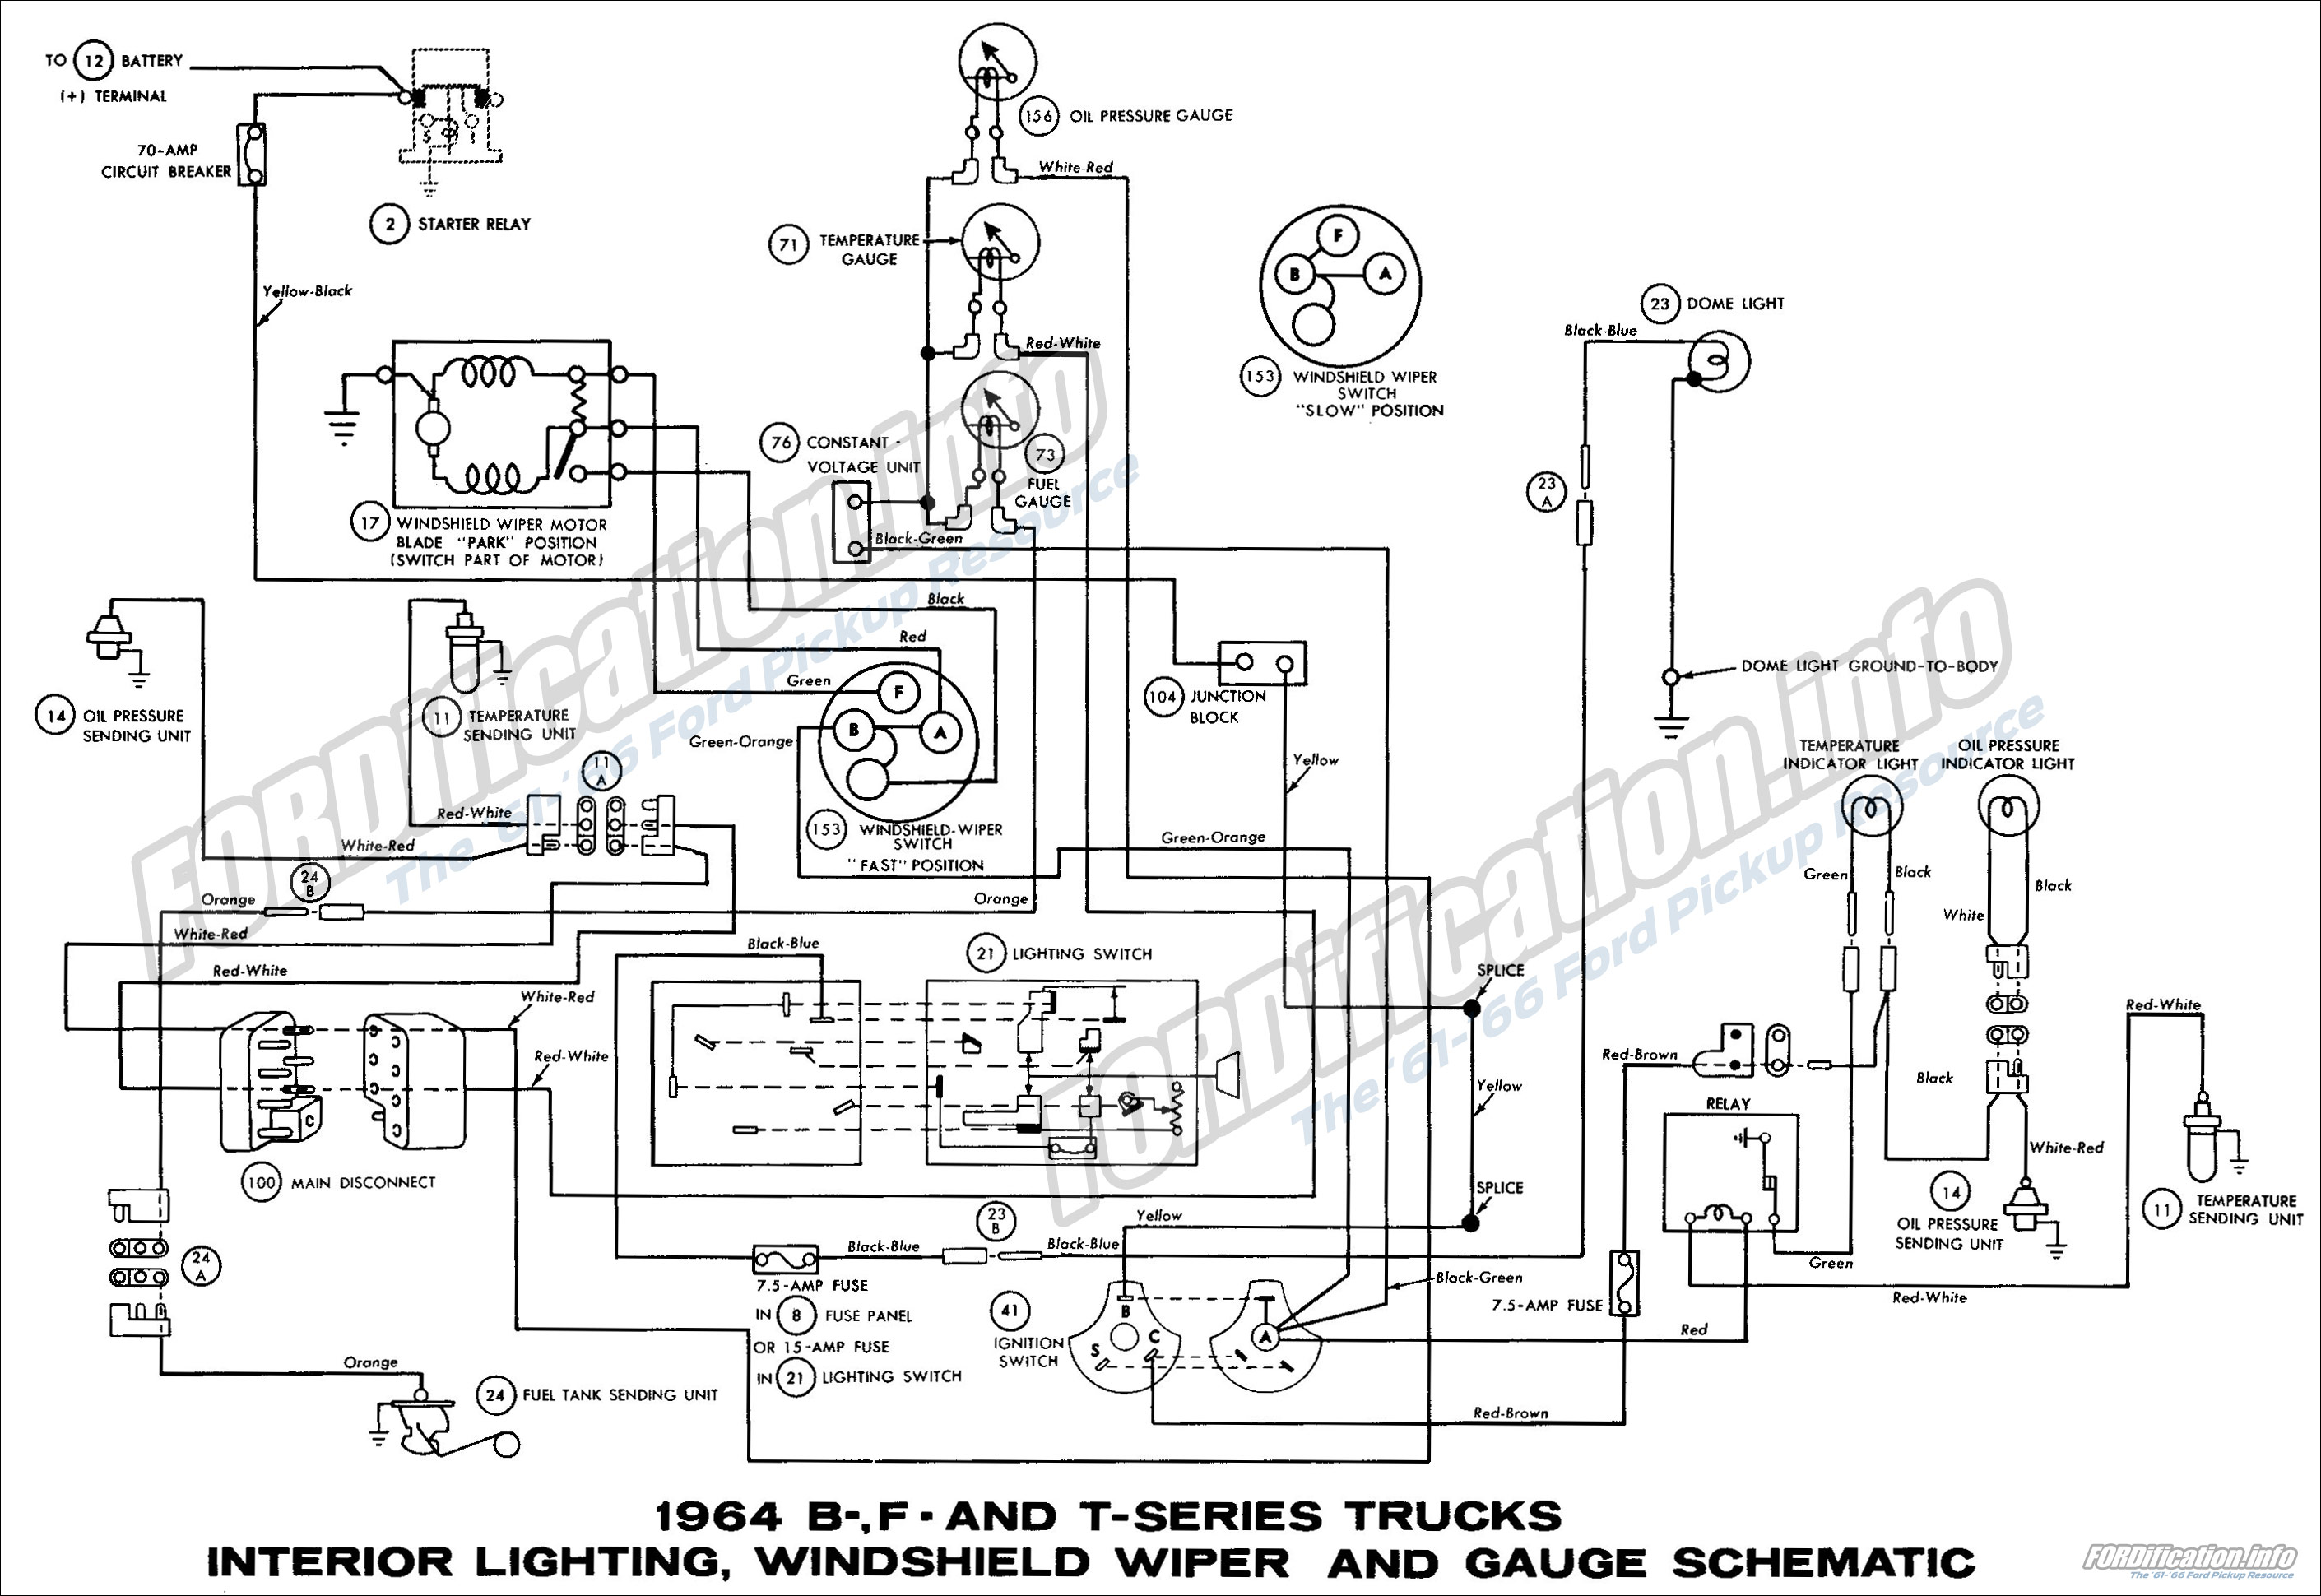 66 Ford Wiper Wiring Diagram Schematic Great Design Of Windshield Switch 43 Lucas Motor Chevy